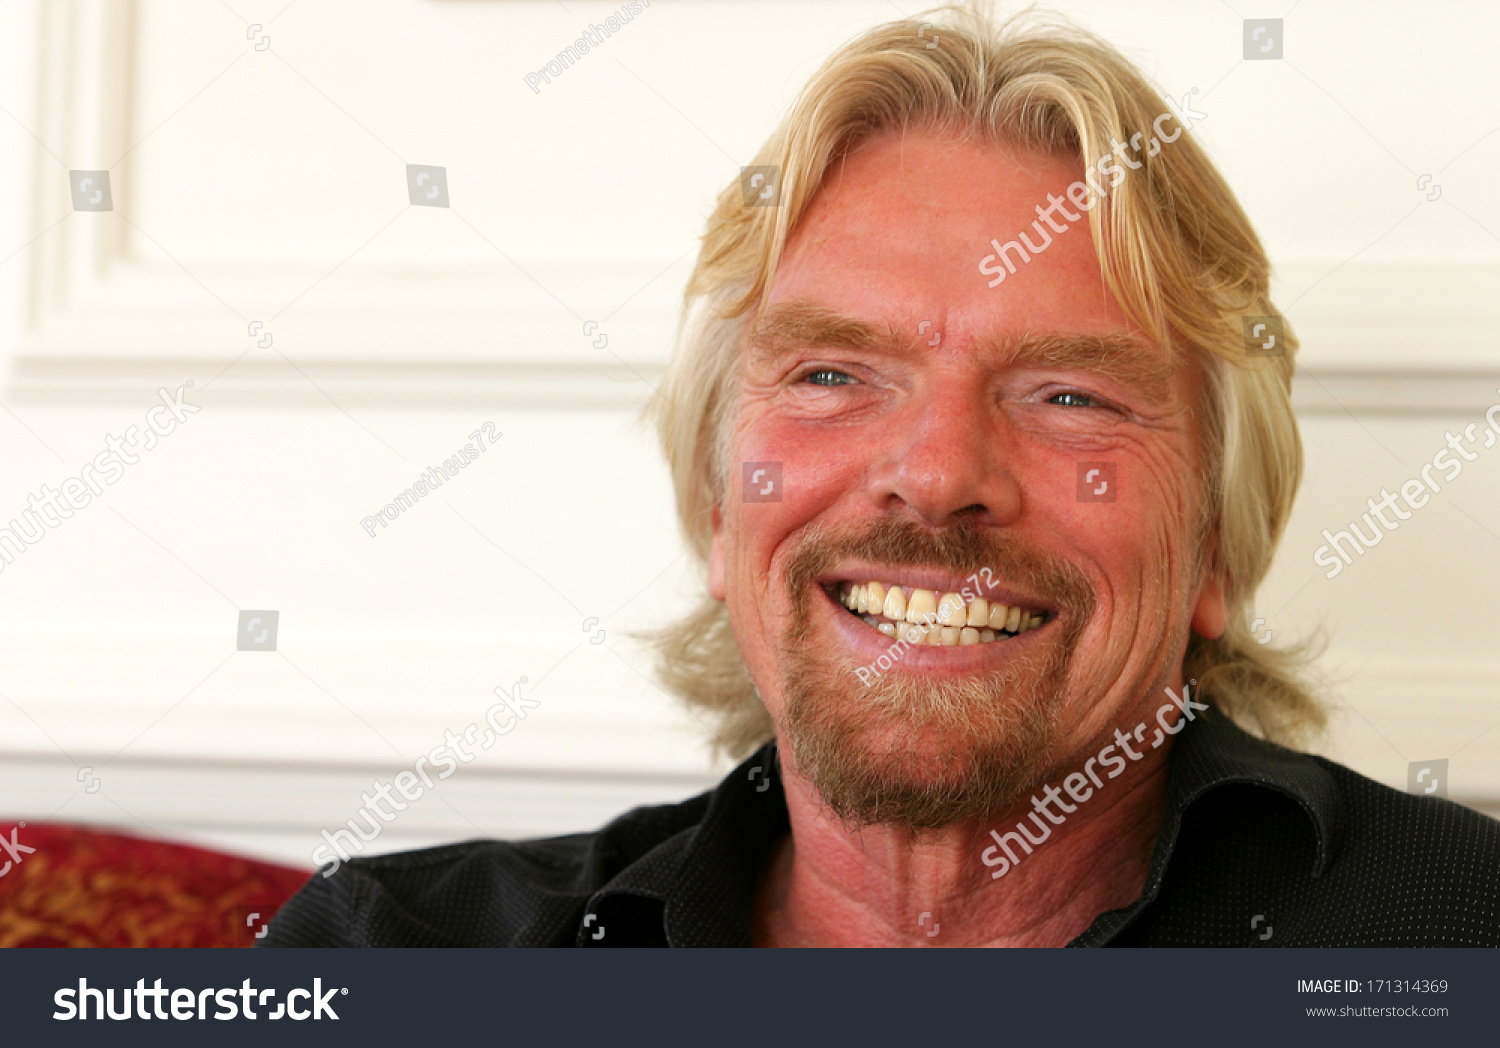 Timeline of Richard Branson's business ventures